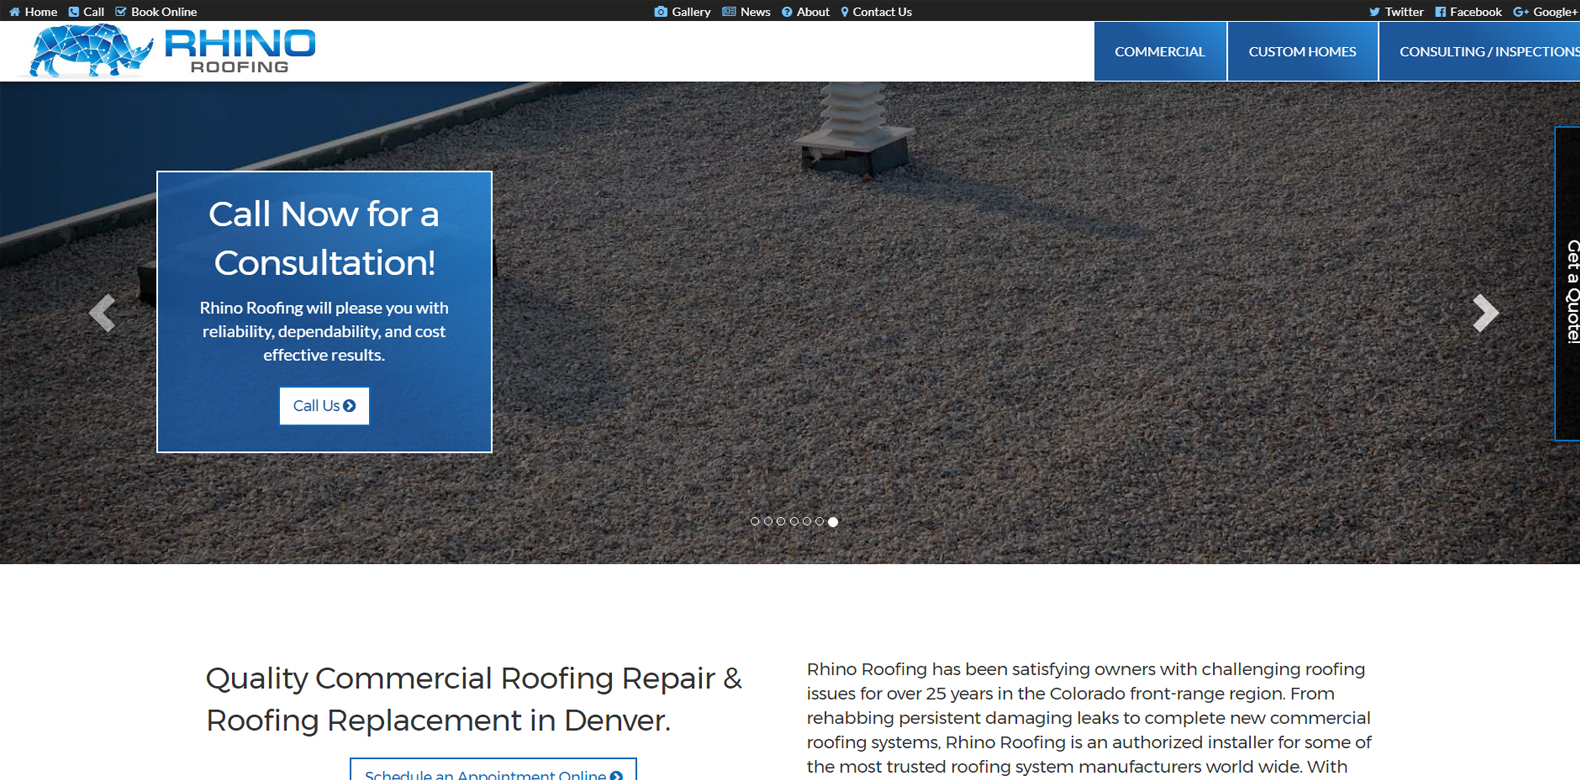 New Website Launch: Rhino Roofing